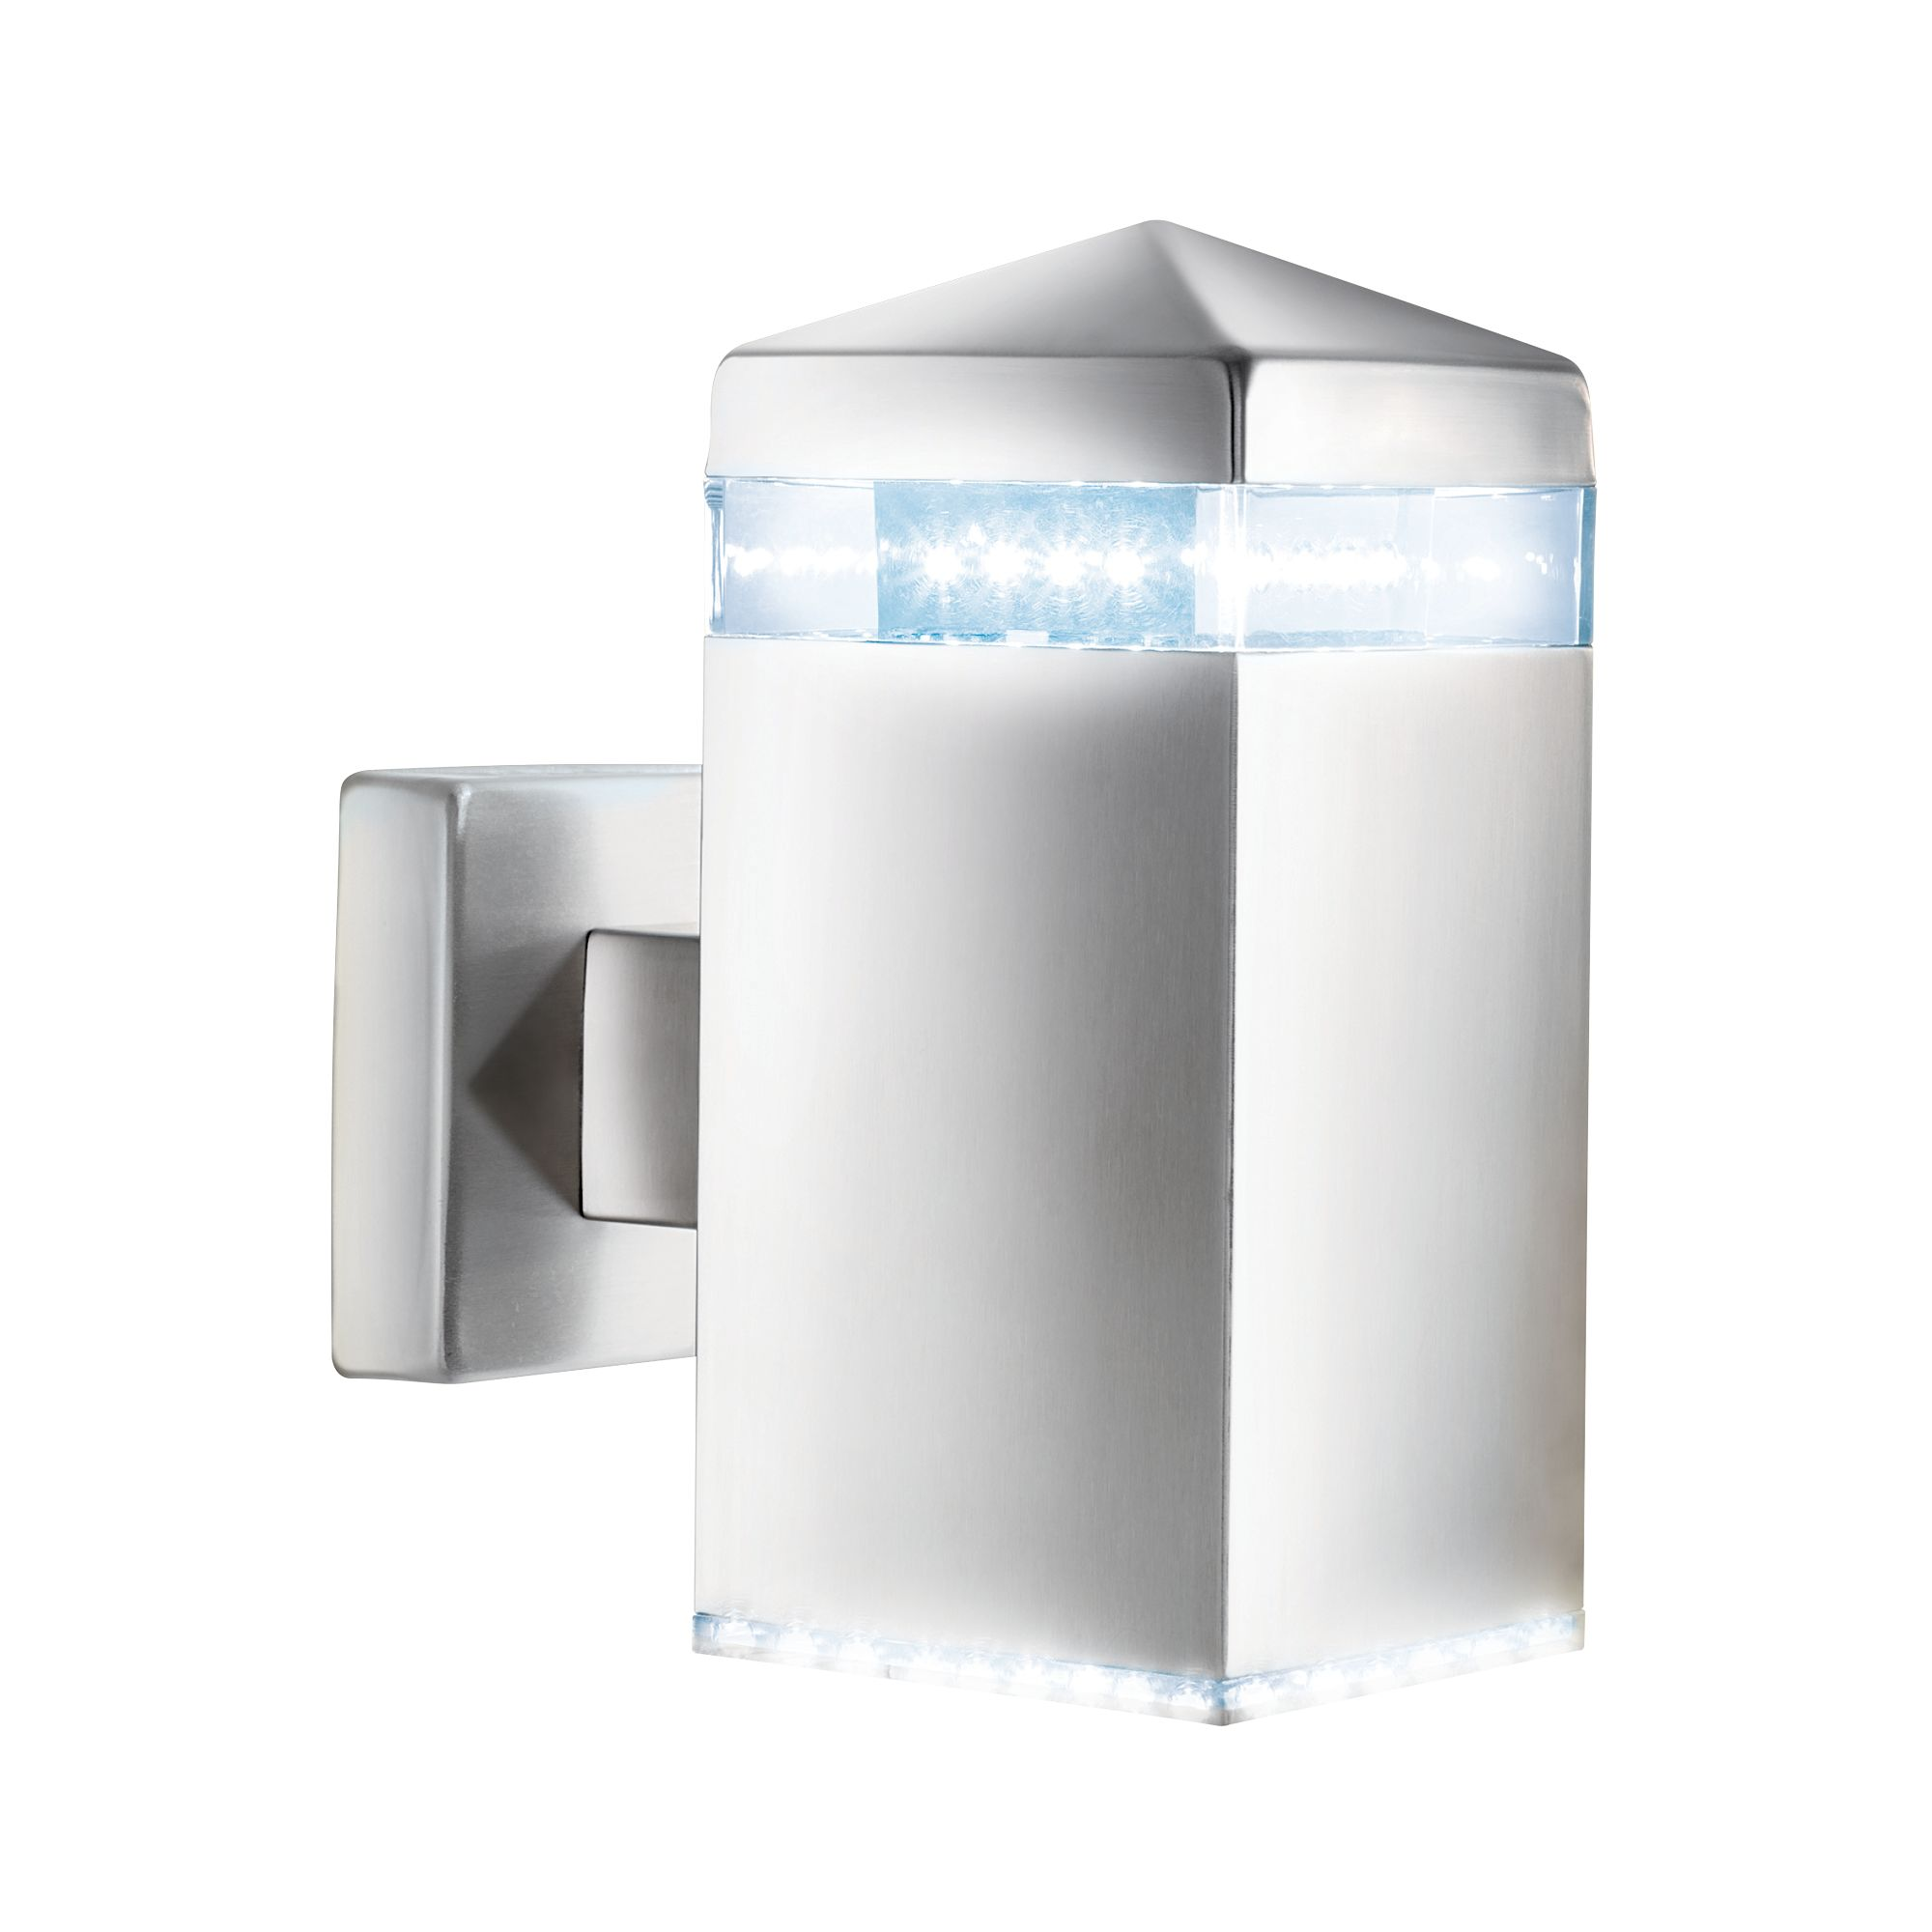 Stainless Steel Ip44 Led Outdoor Wall Light With Clear Diffuser